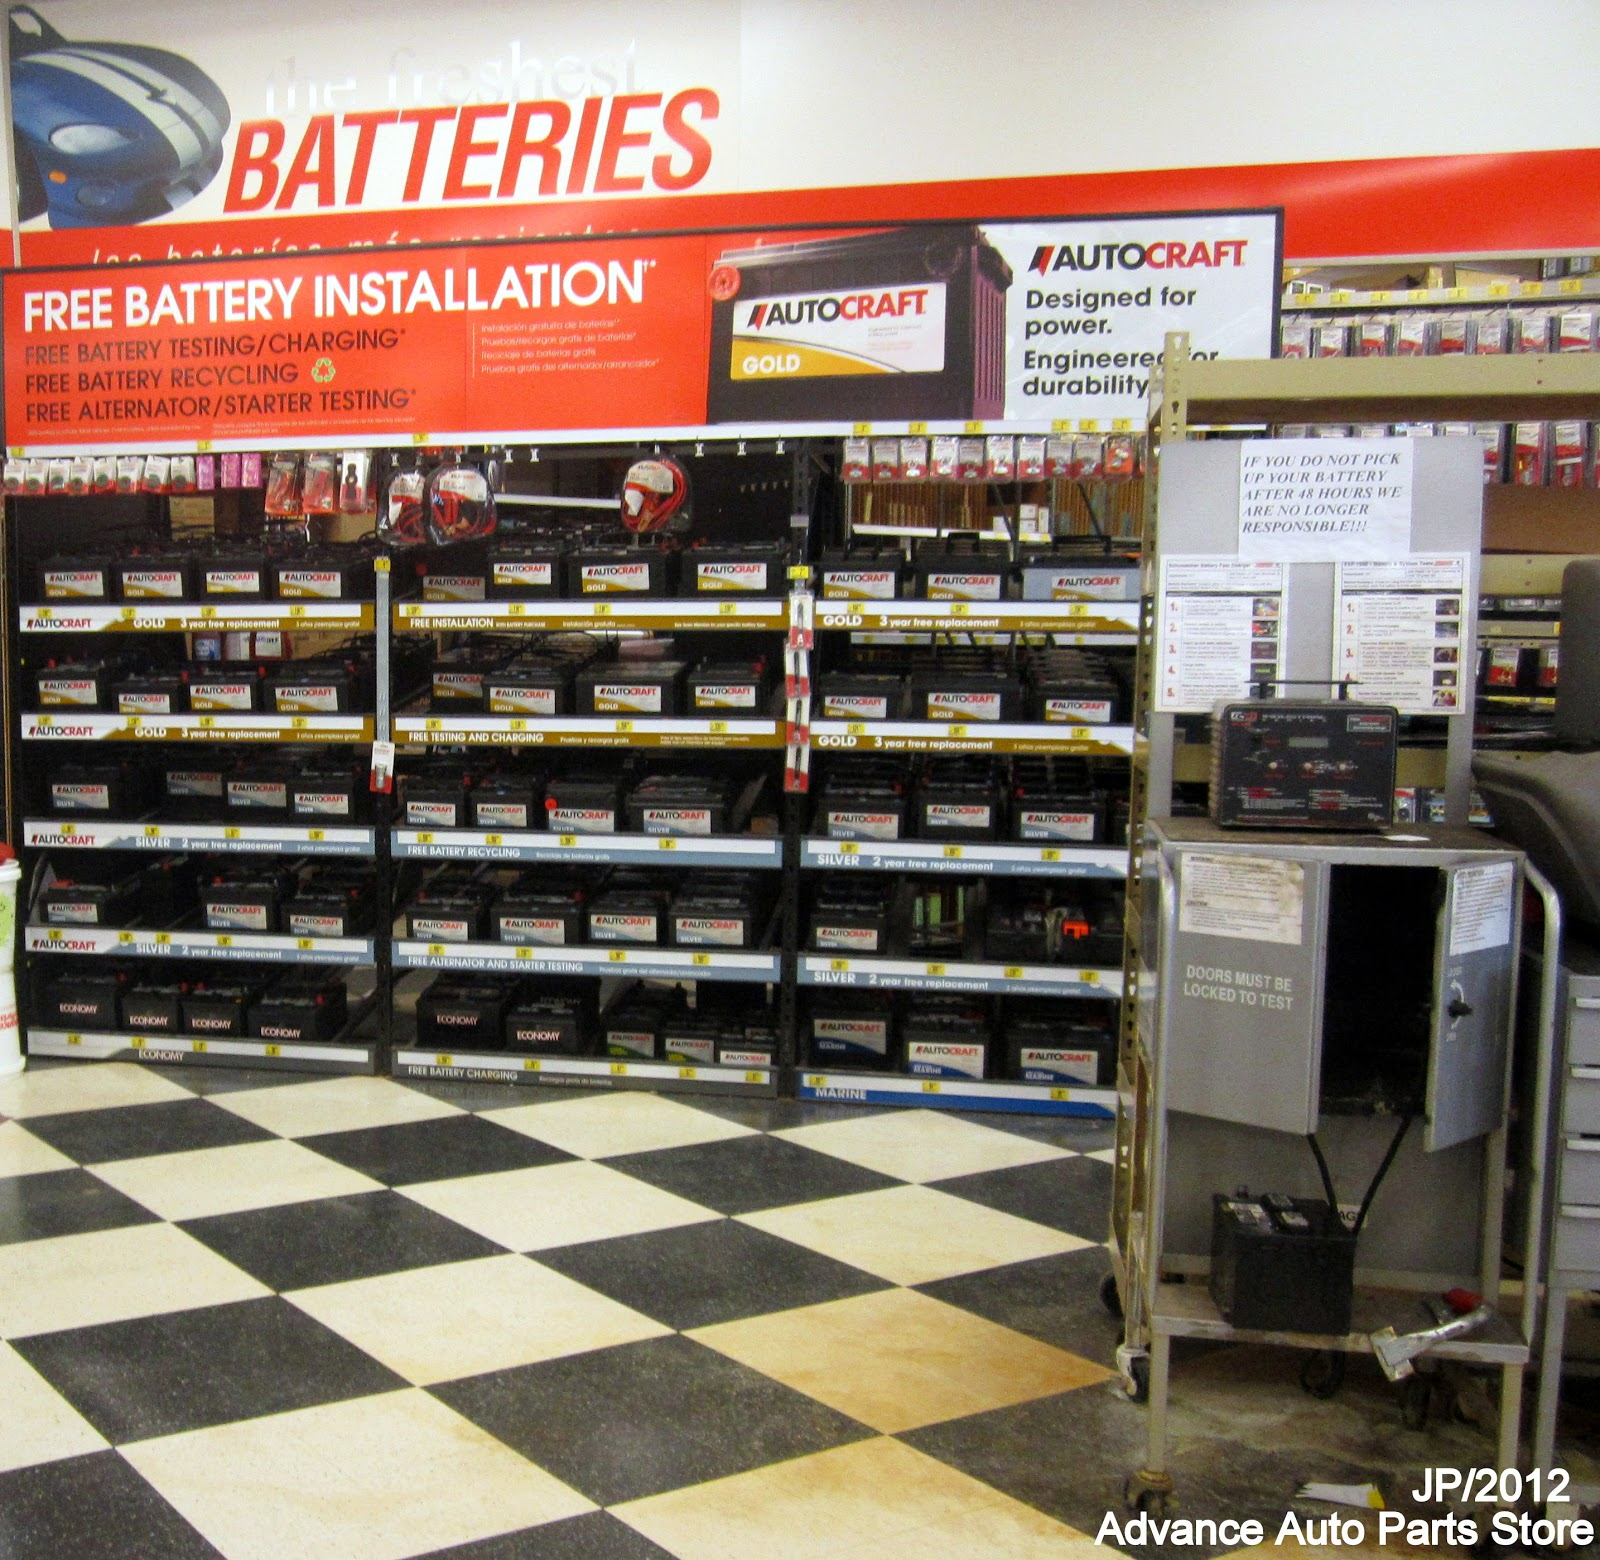 A replacement auto battery provides the jolt your vehicle needs, especially when the temperatures start to fall and a quick start is a necessity. Choose from a wide variety of car batteries to match your specific make and model.